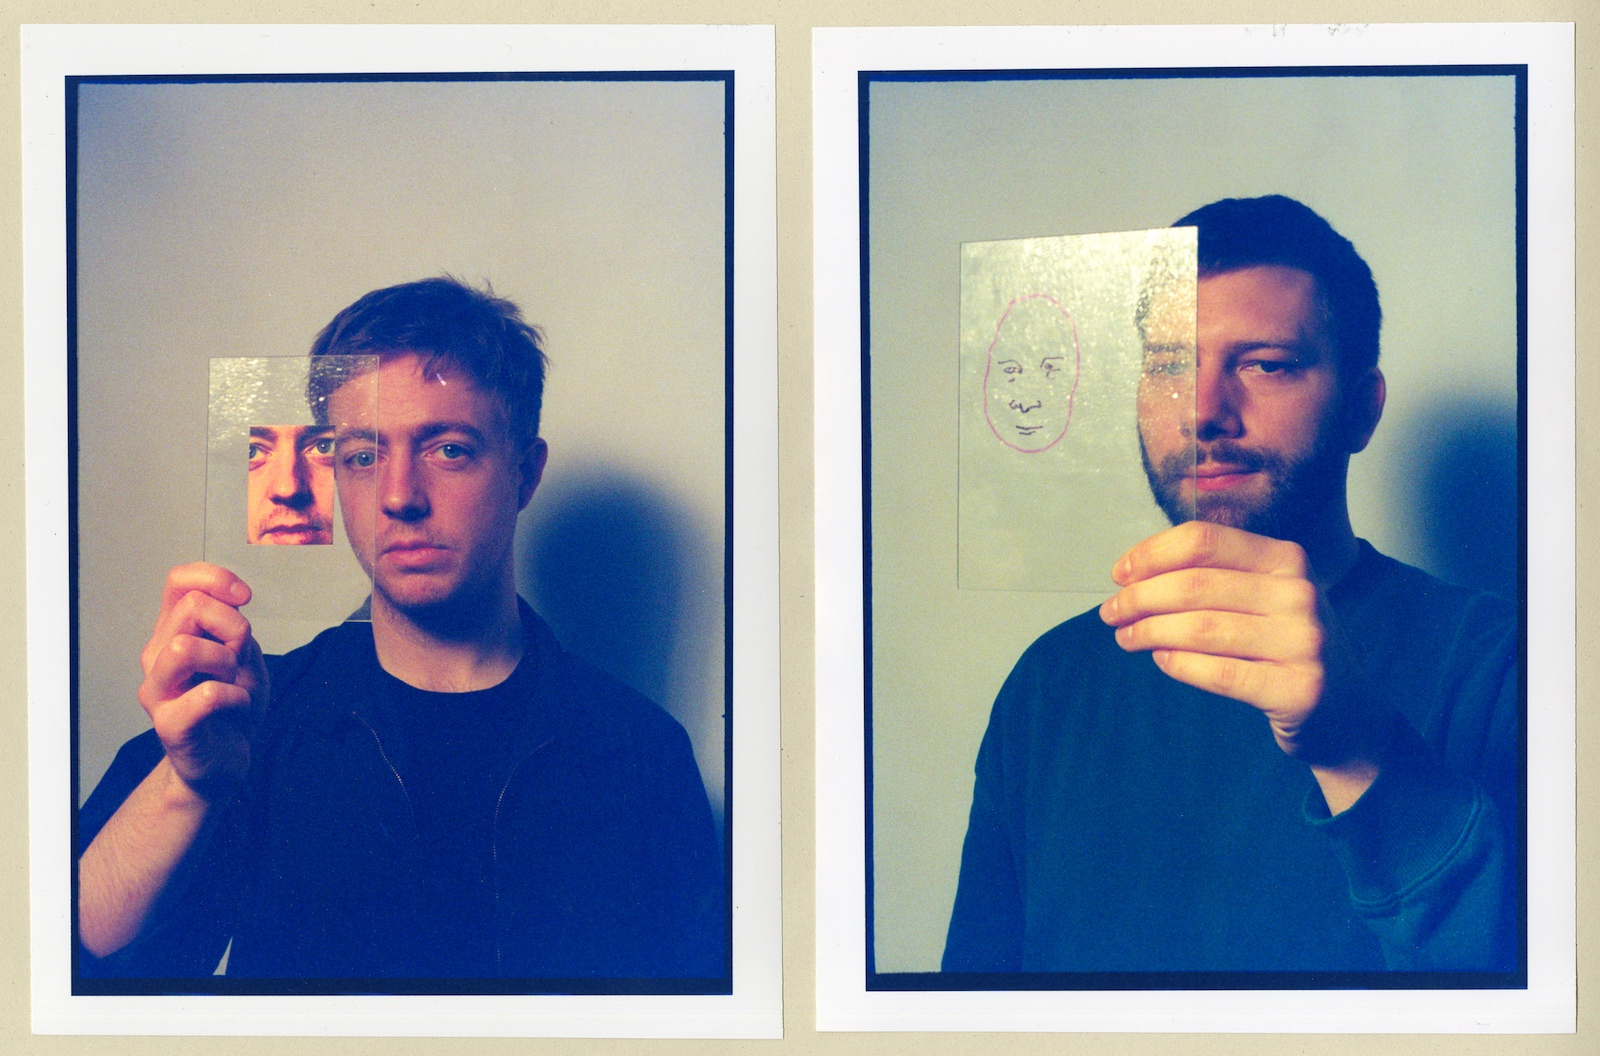 Mount Kimbie - photgrapher Frank Lebon